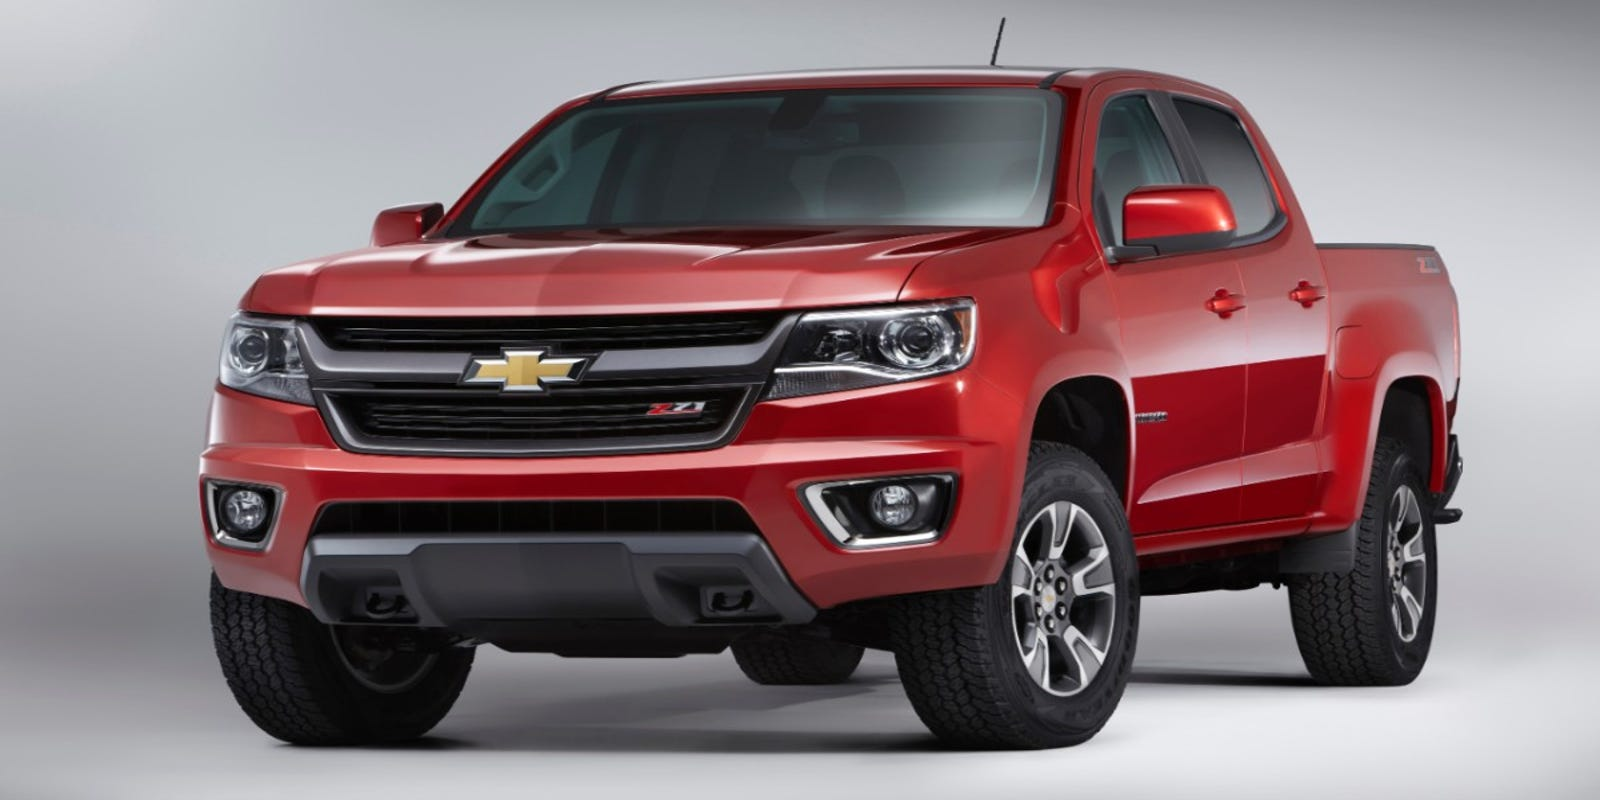 GM halts sales of Chevrolet Colorado, GMC Canyon trucks over